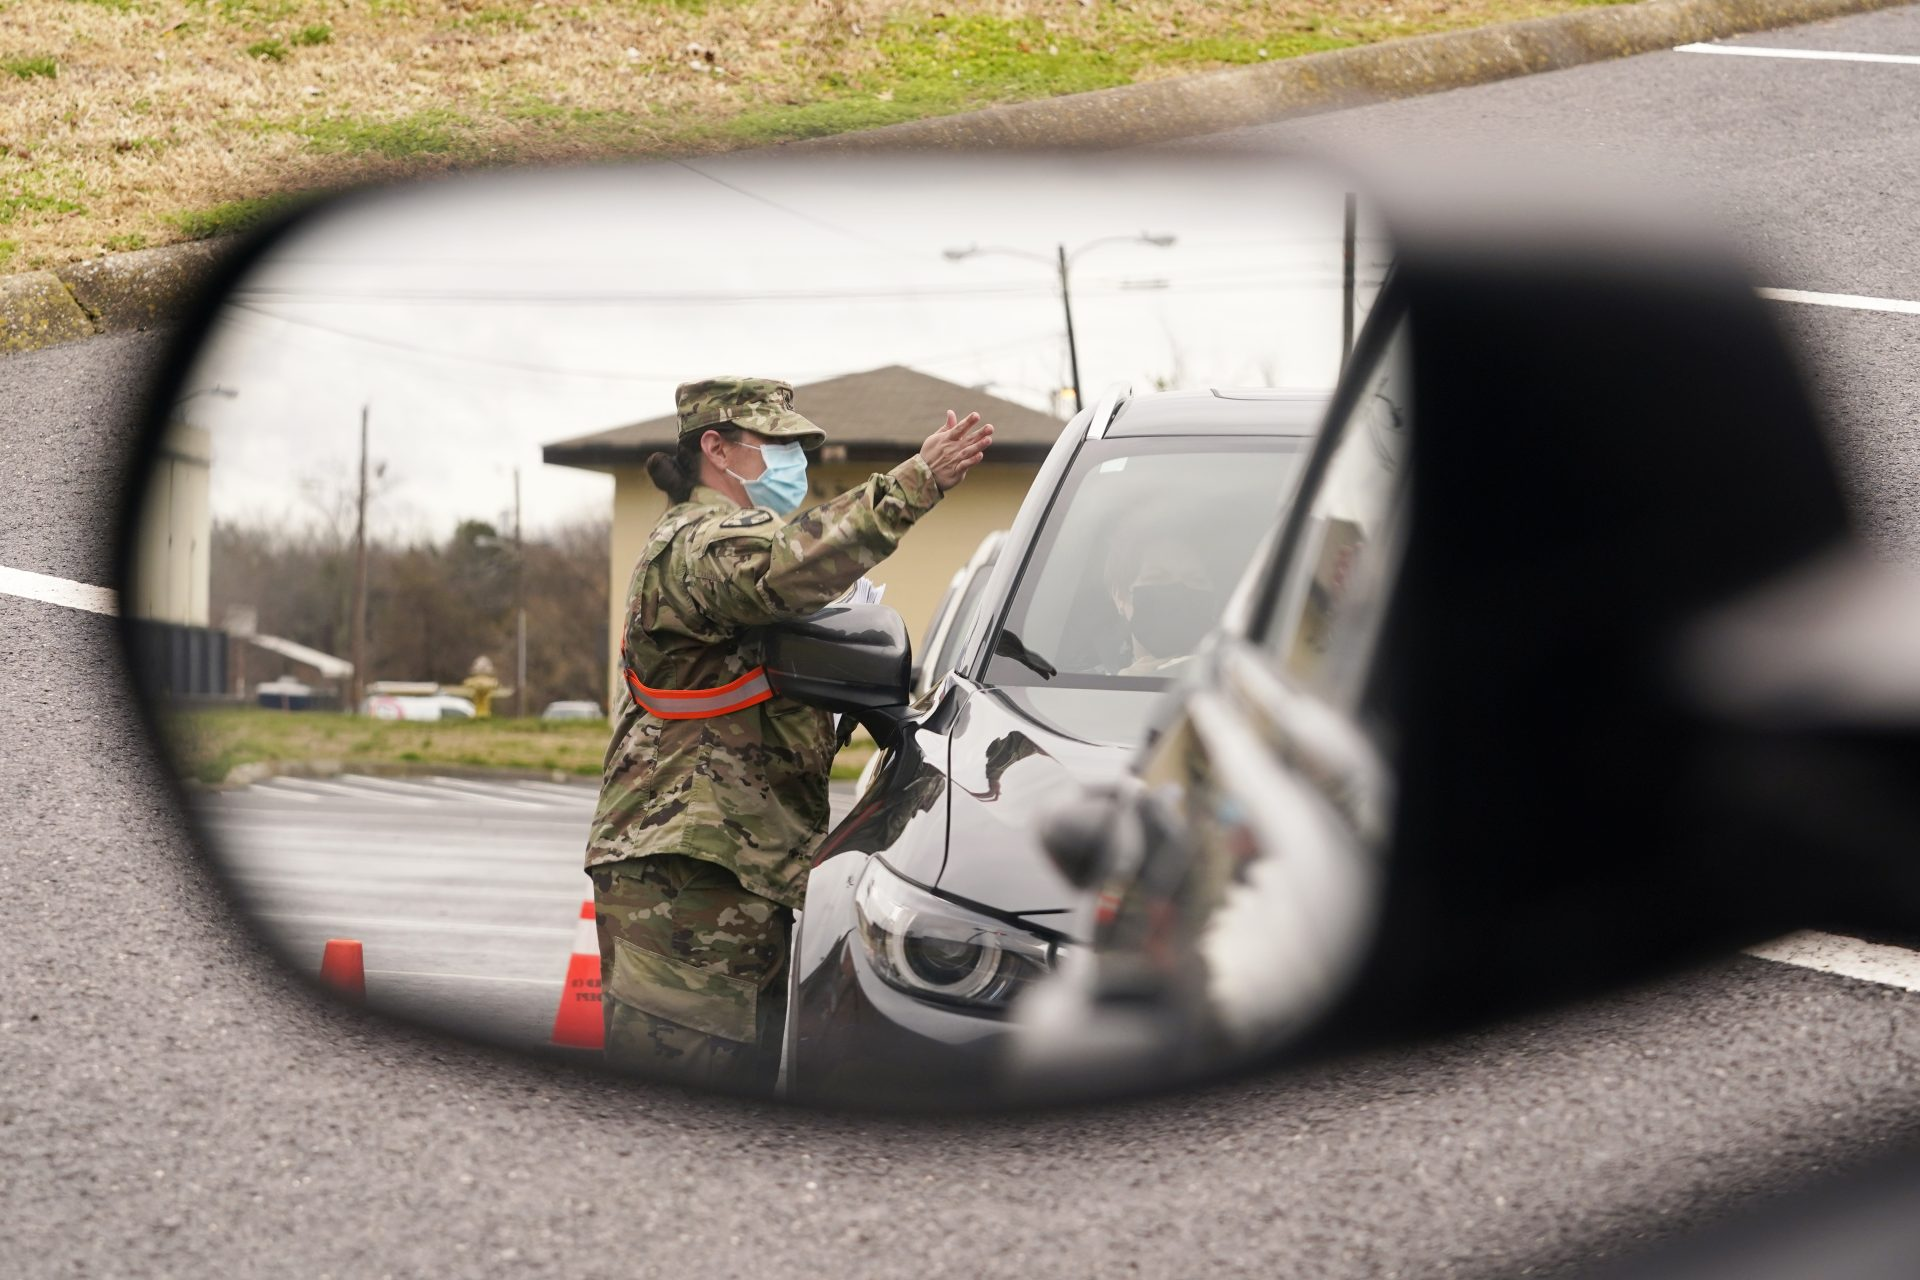 A National Guard soldier directing drivers is reflected in the mirror of a car waiting in a COVID-19 vaccination line Feb. 26, 2021, in Shelbyville, Tenn.